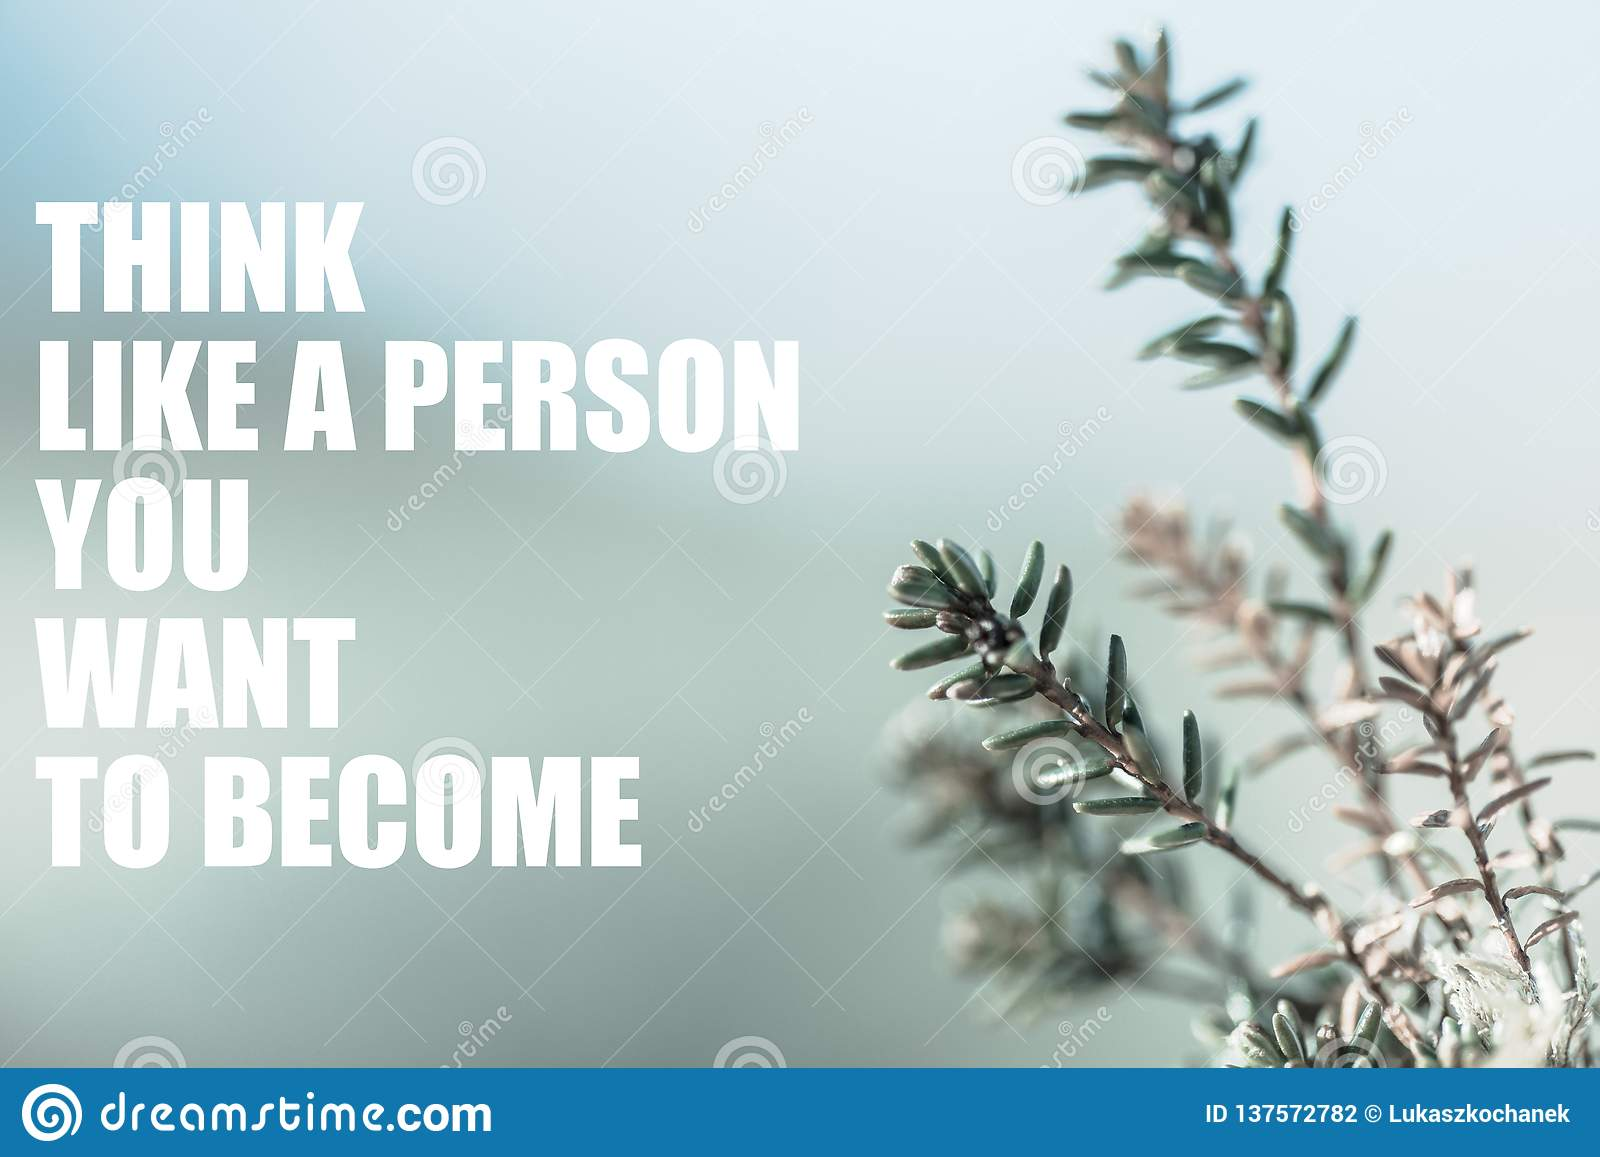 Motivational sentence regarding self-development. Motivational header wallpaper background bright